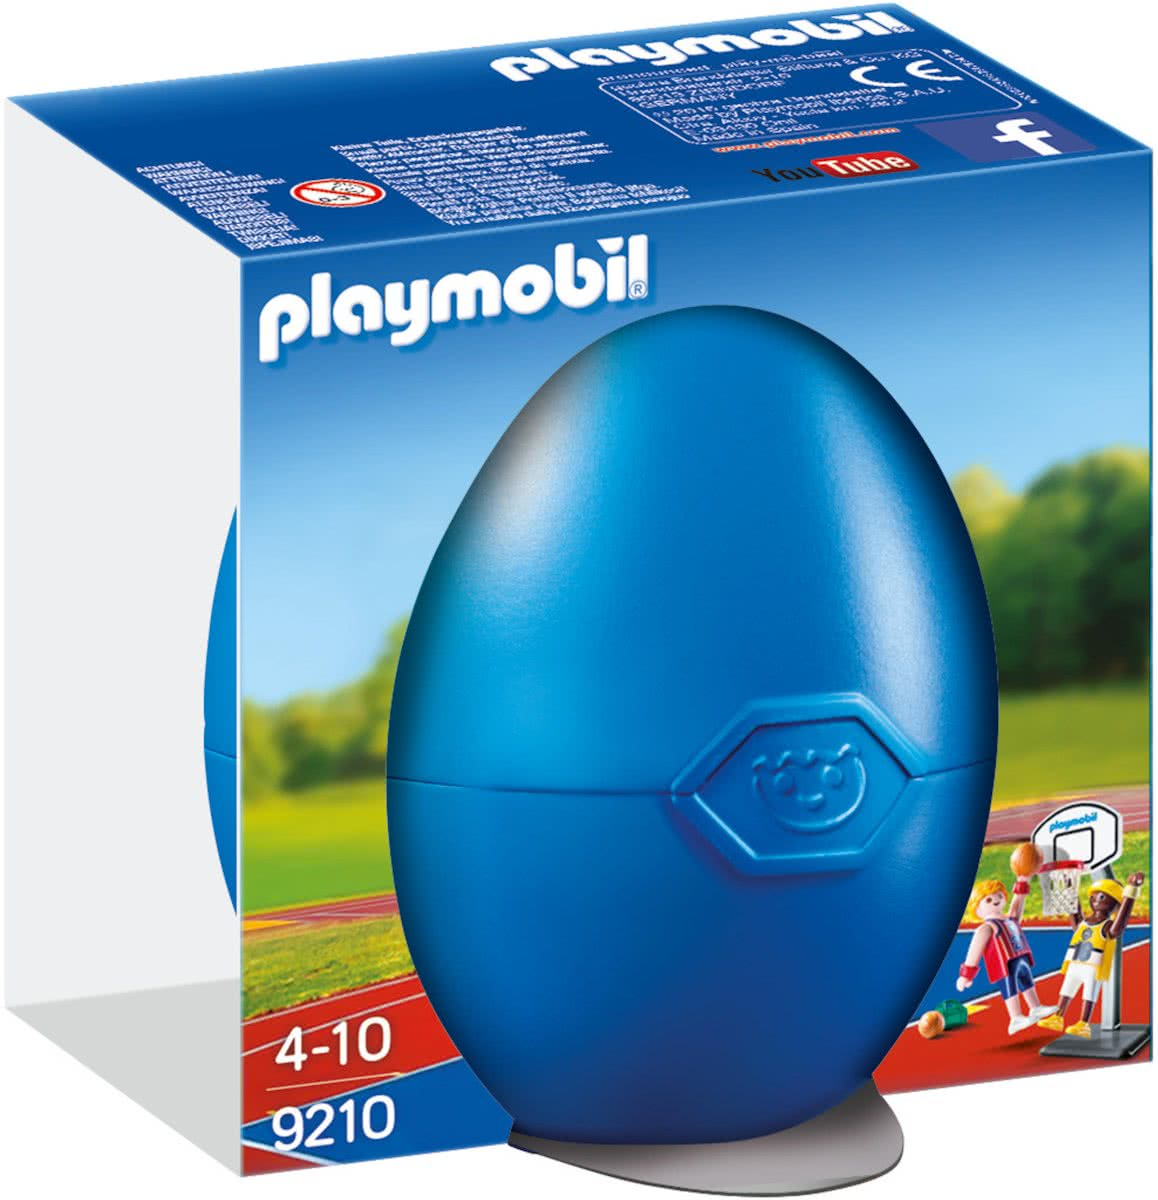 PLAYMOBIL Basketballers met ring  - 9210